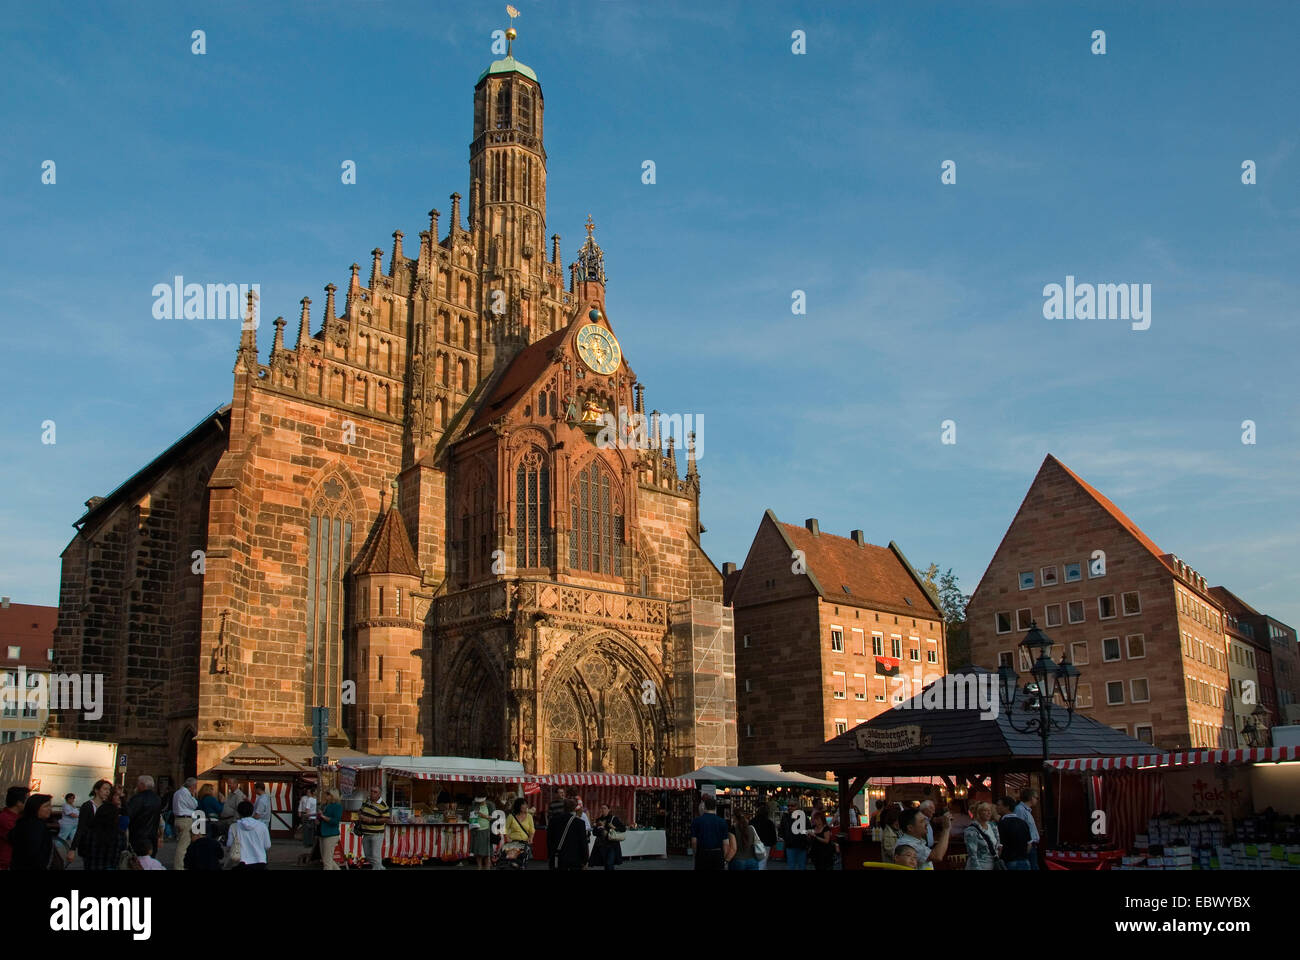 Frauenkirche, Church of Our Lady at main market in evening light, Germany, Bavaria, Franken, Franconia, Nuernberg Stock Photo